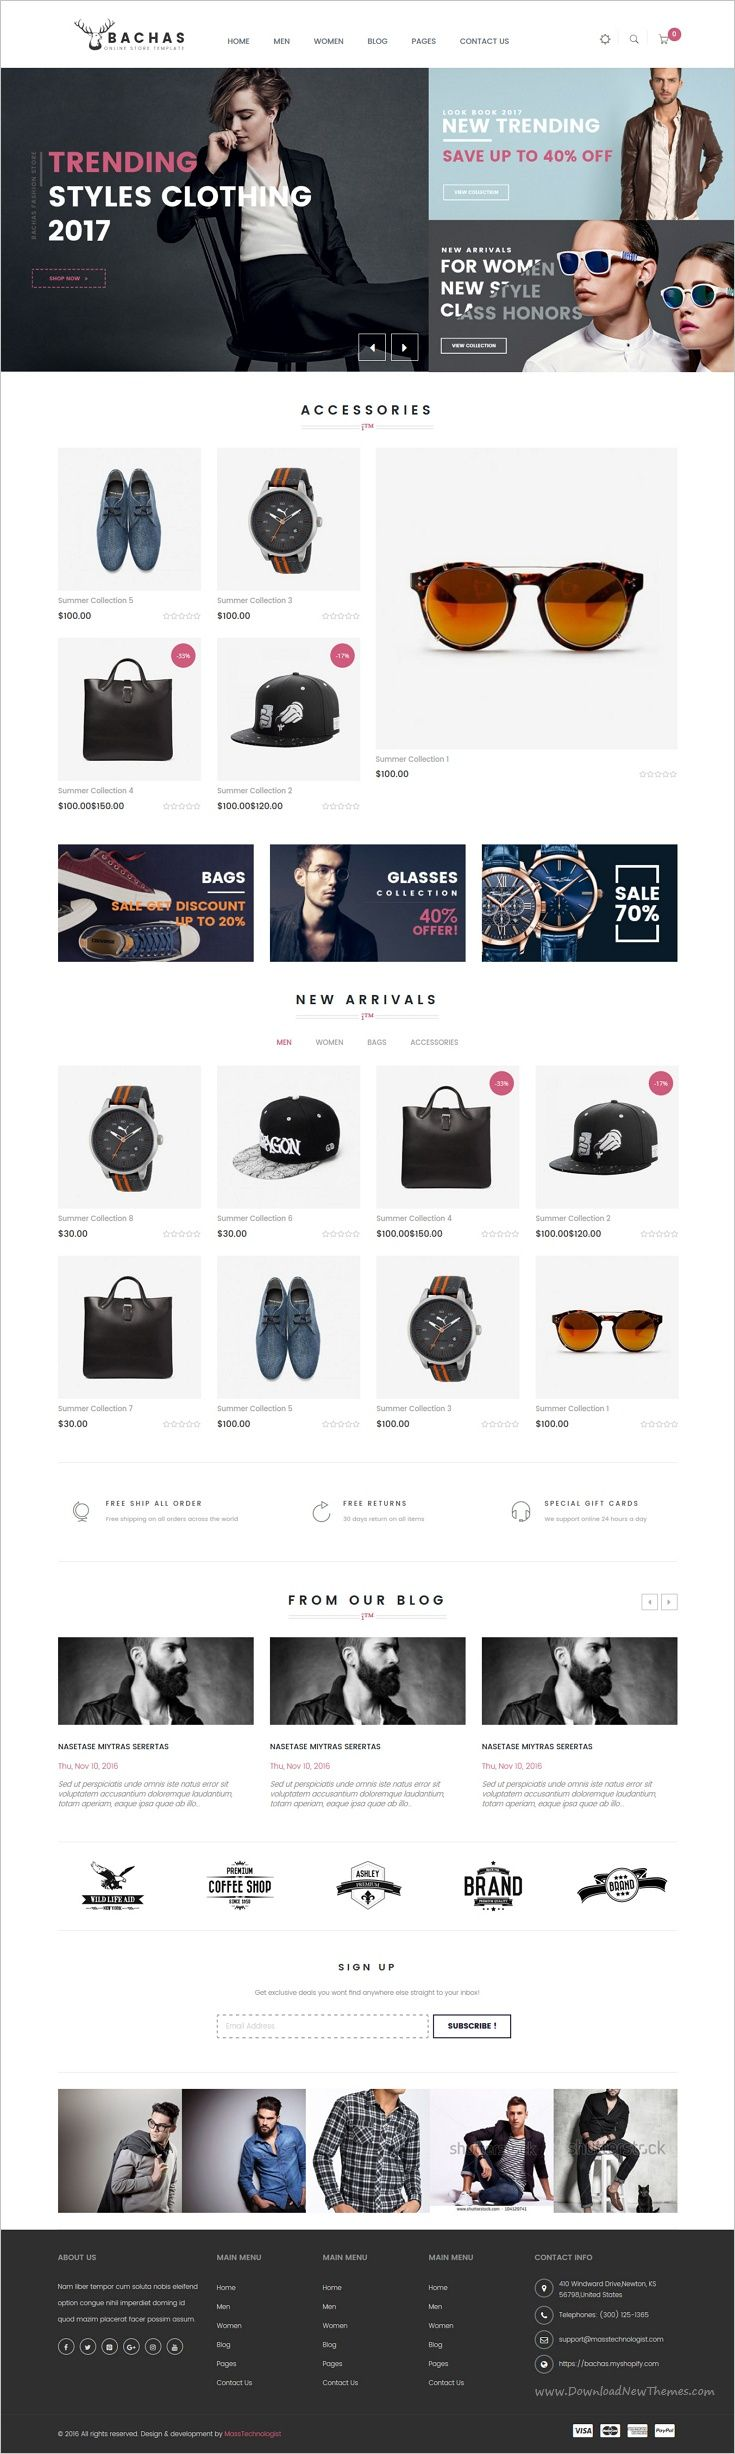 Bachas is beautifully design responsive #Shopify theme for #webdev stunning #eCommerce website with 4 unique homepage layouts download now➩ https://themeforest.net/item/bachas-multipurpose-responsive-shopify-theme/18630693?ref=Datasata